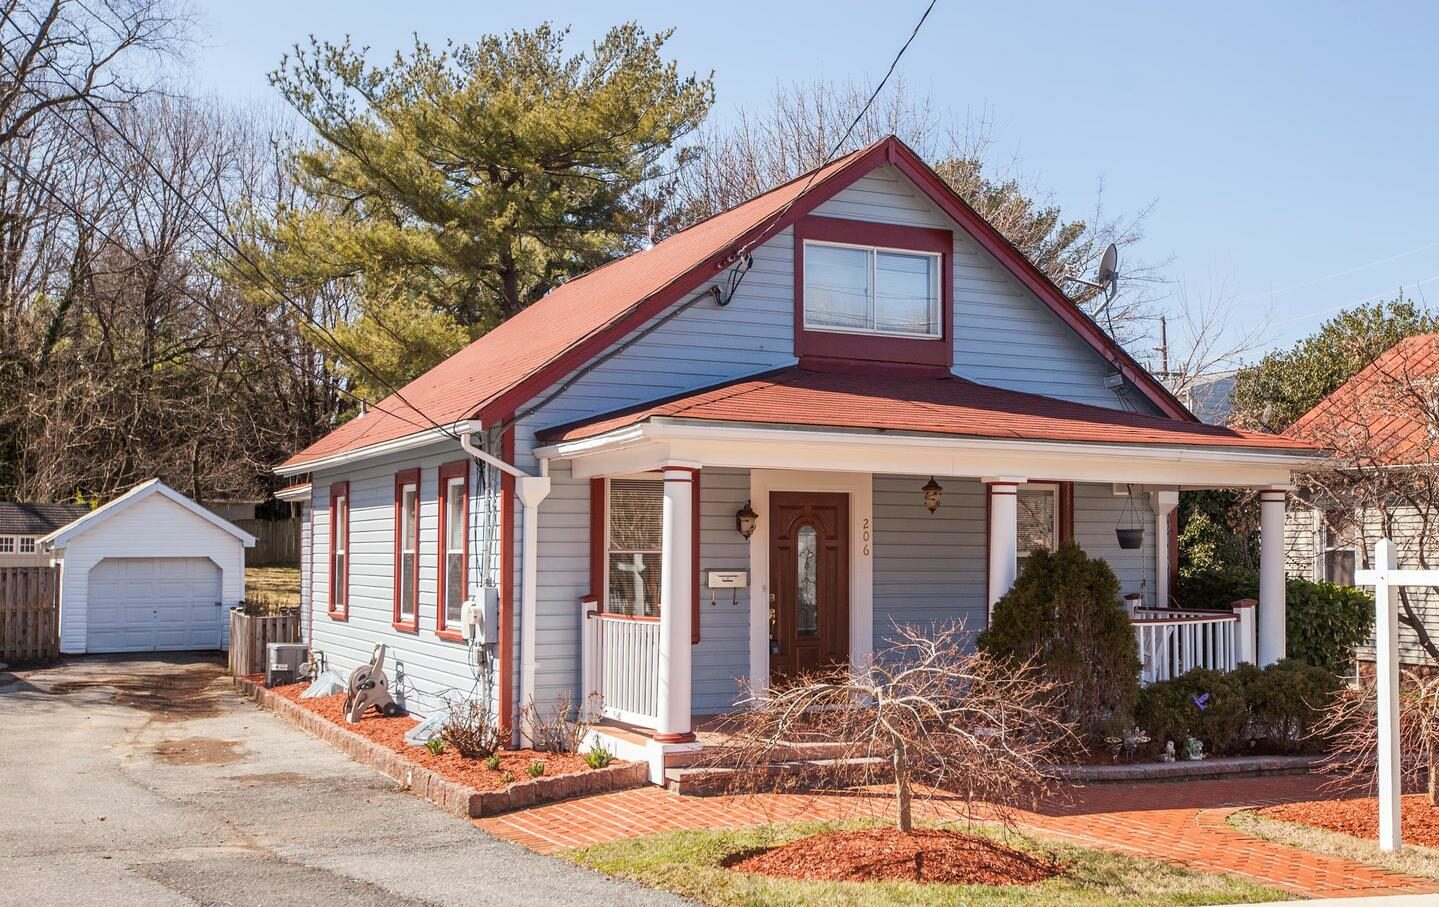 House for sale in dracut